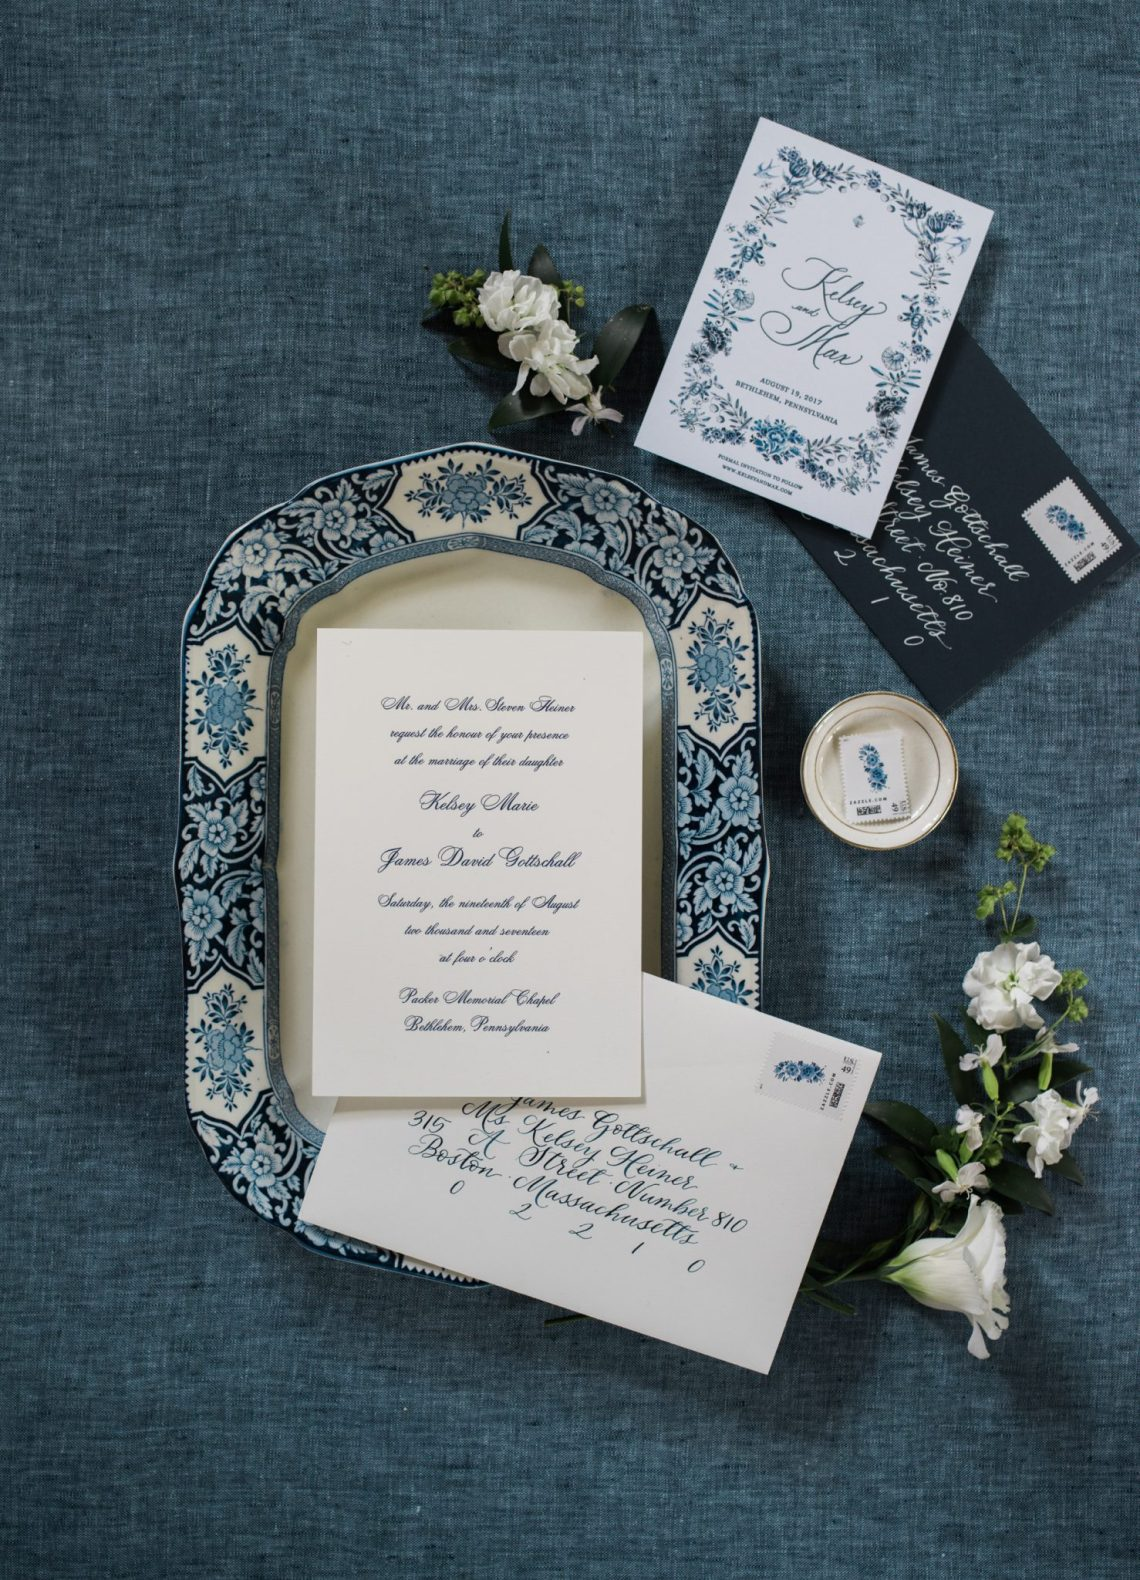 Weyhill Guest House Wedding Planned by The Styled Bride | www.thestyledbride.com